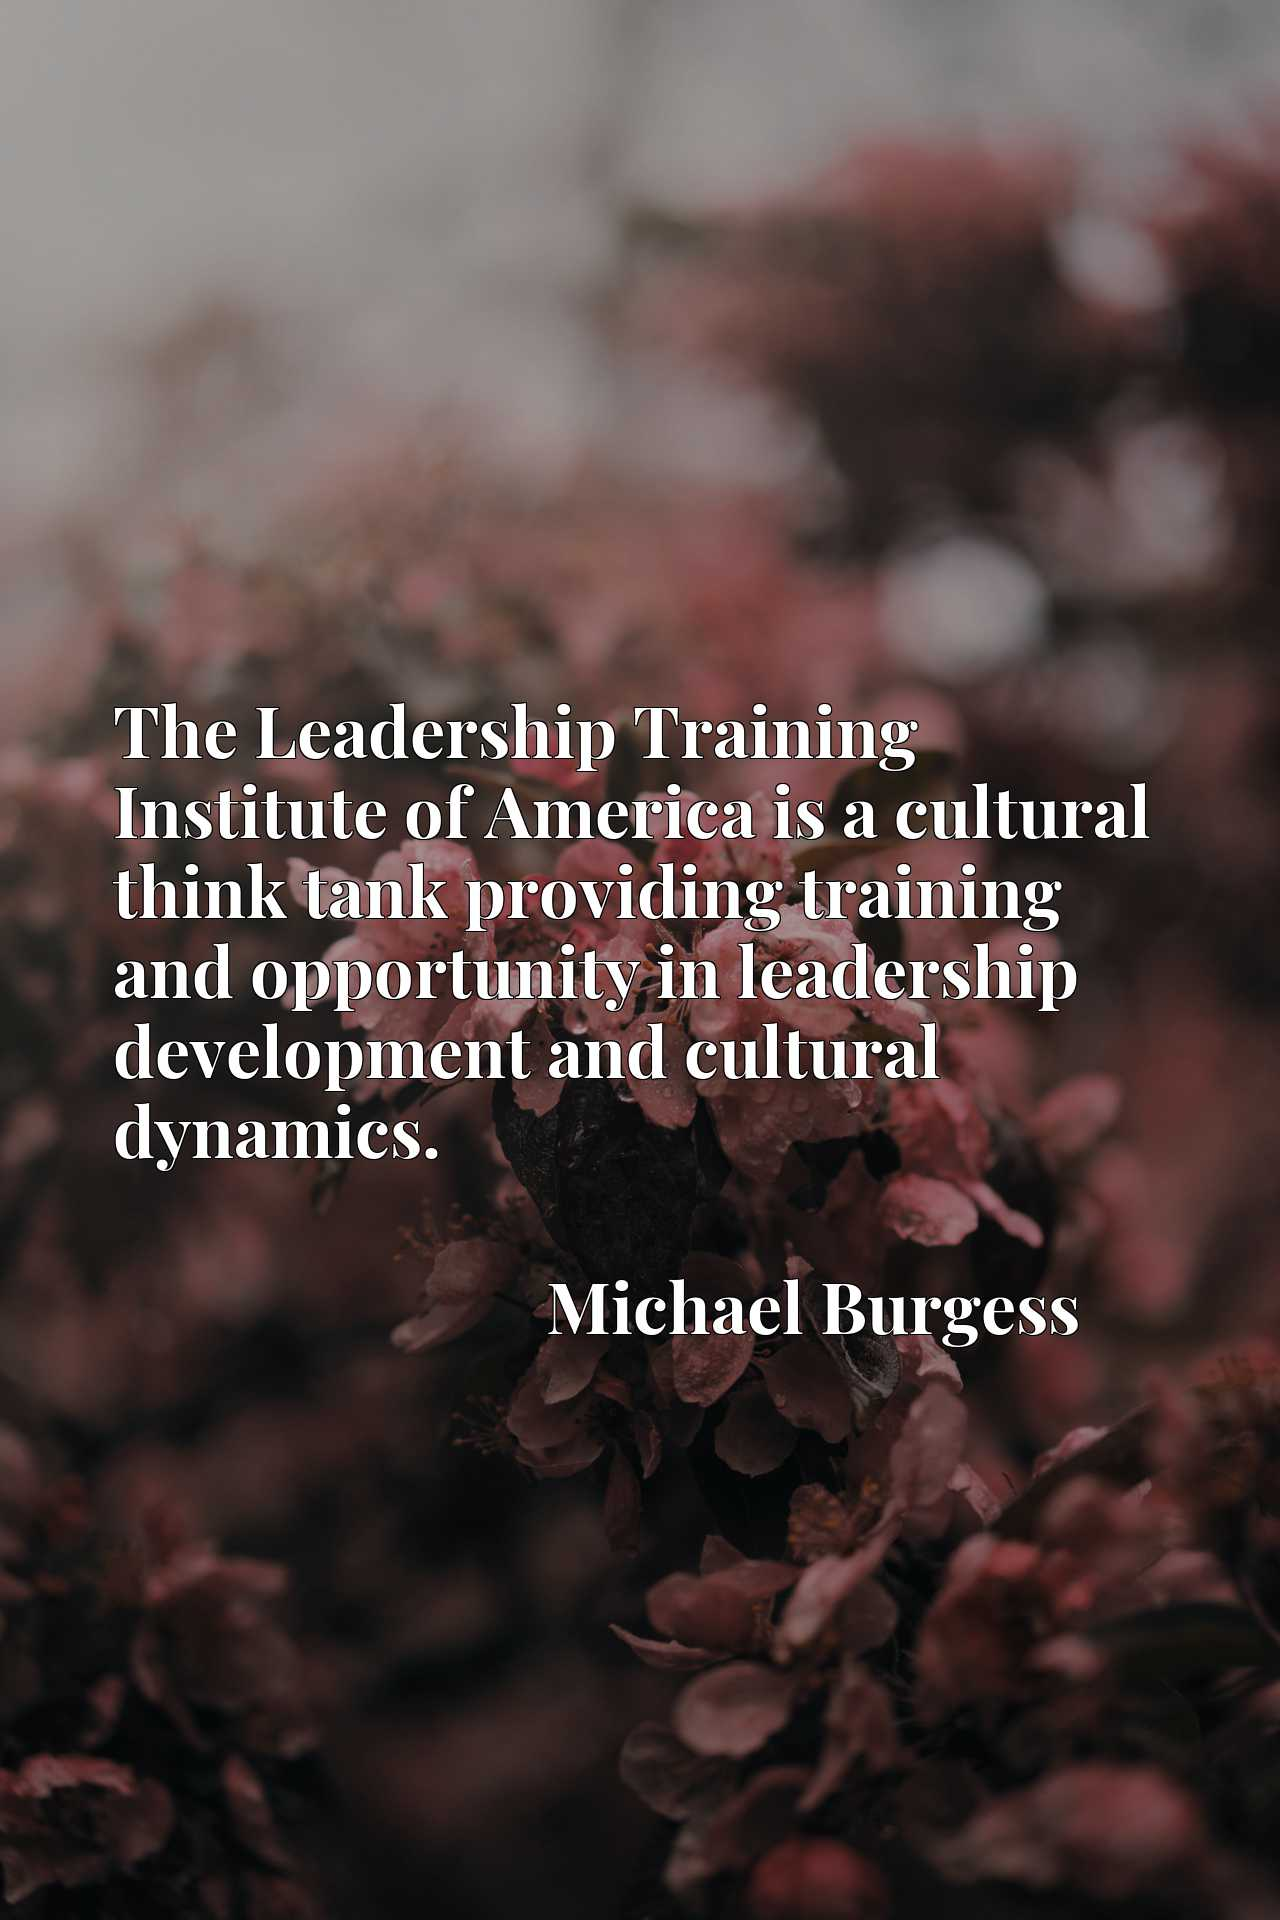 The Leadership Training Institute of America is a cultural think tank providing training and opportunity in leadership development and cultural dynamics.